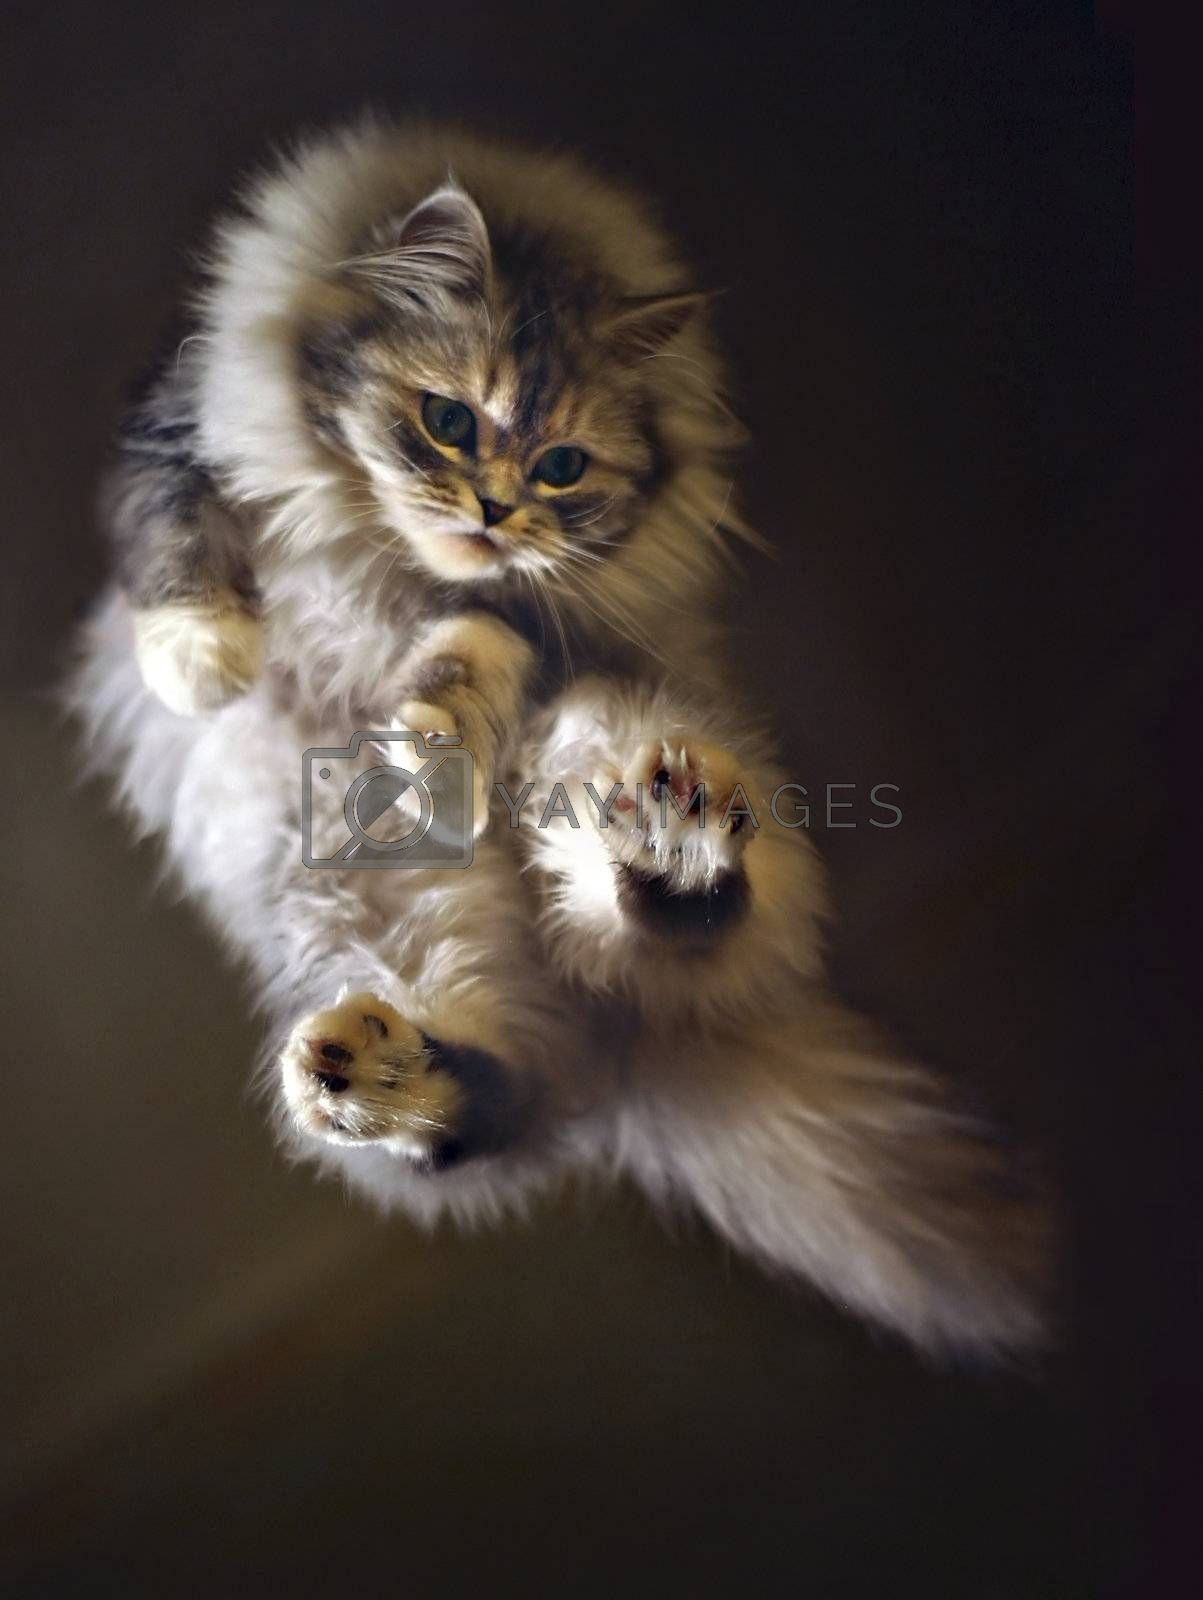 Flying cat by friday